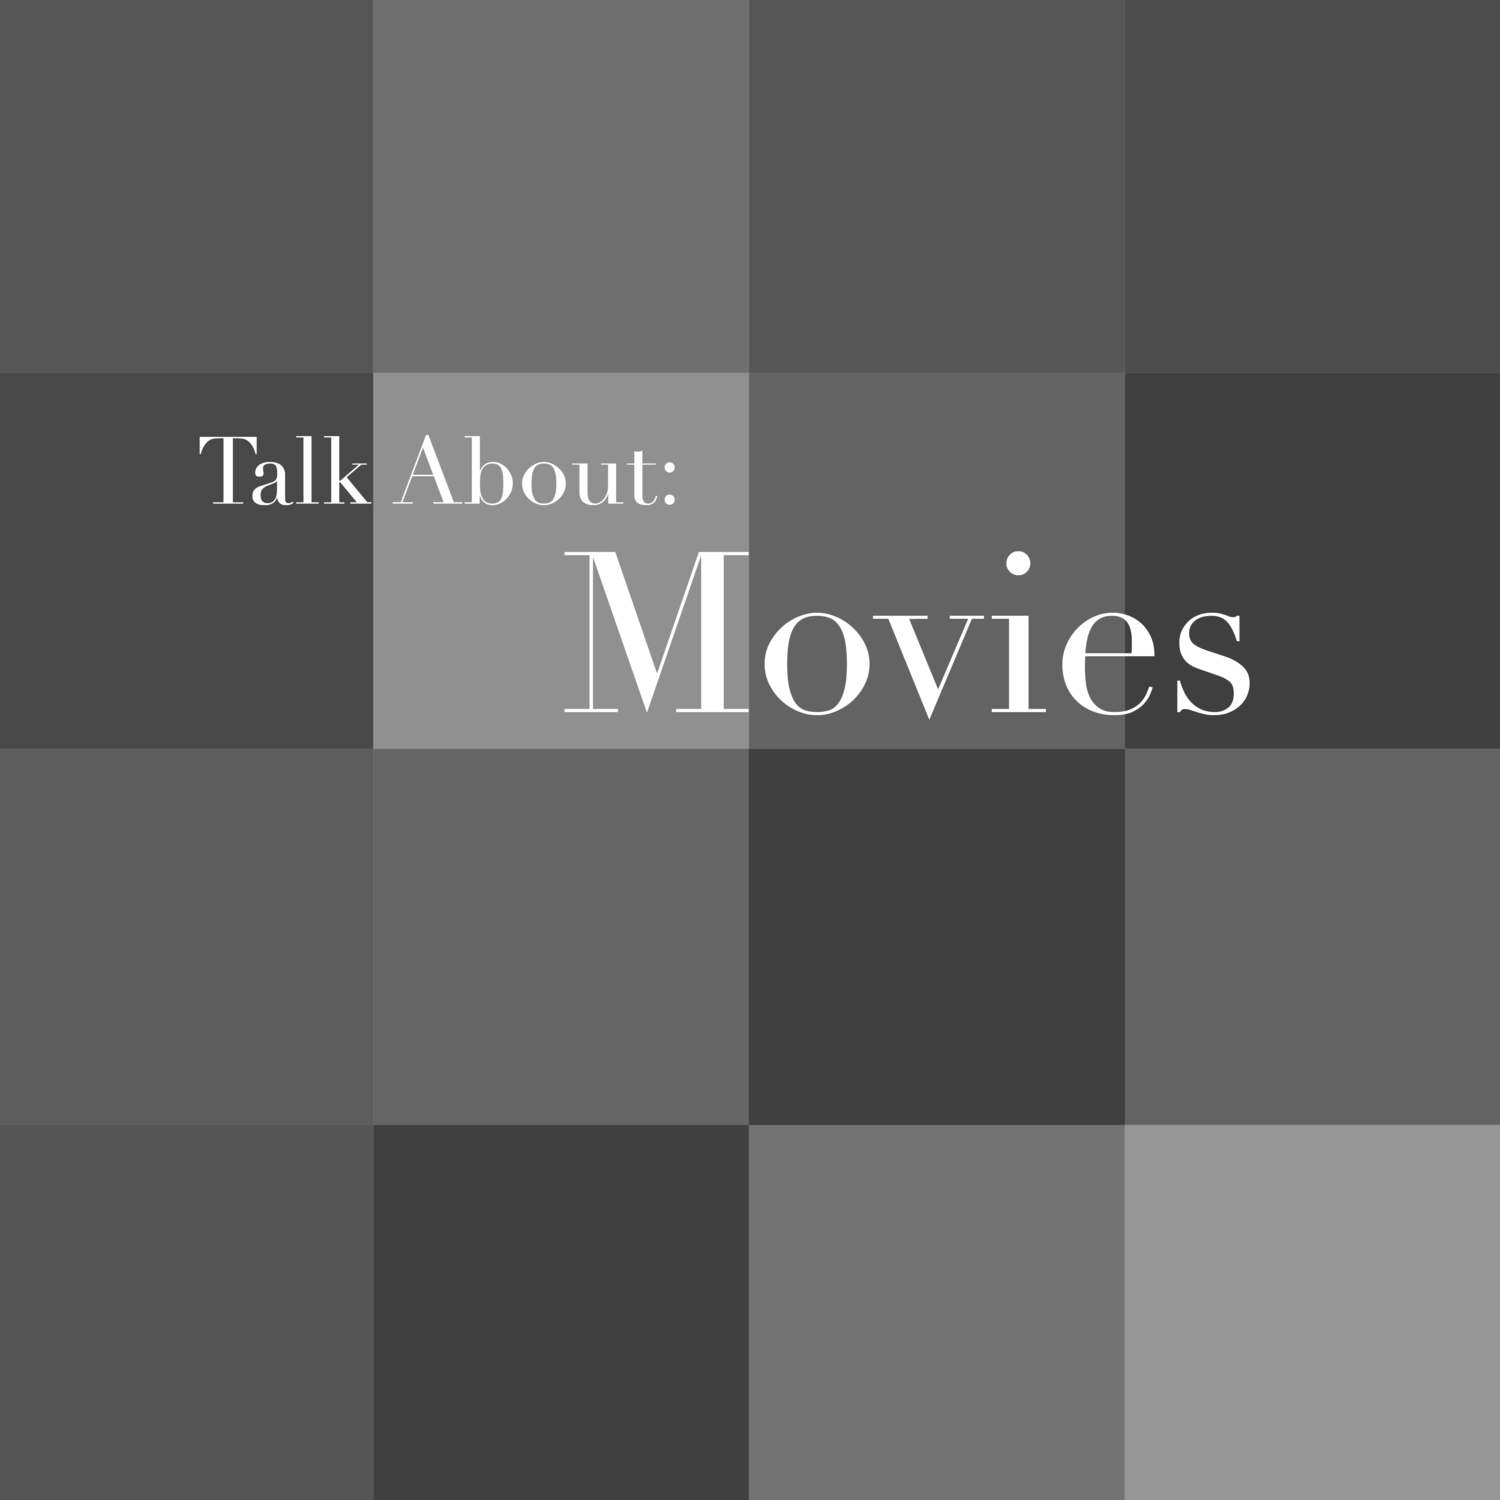 Talk About: Movies